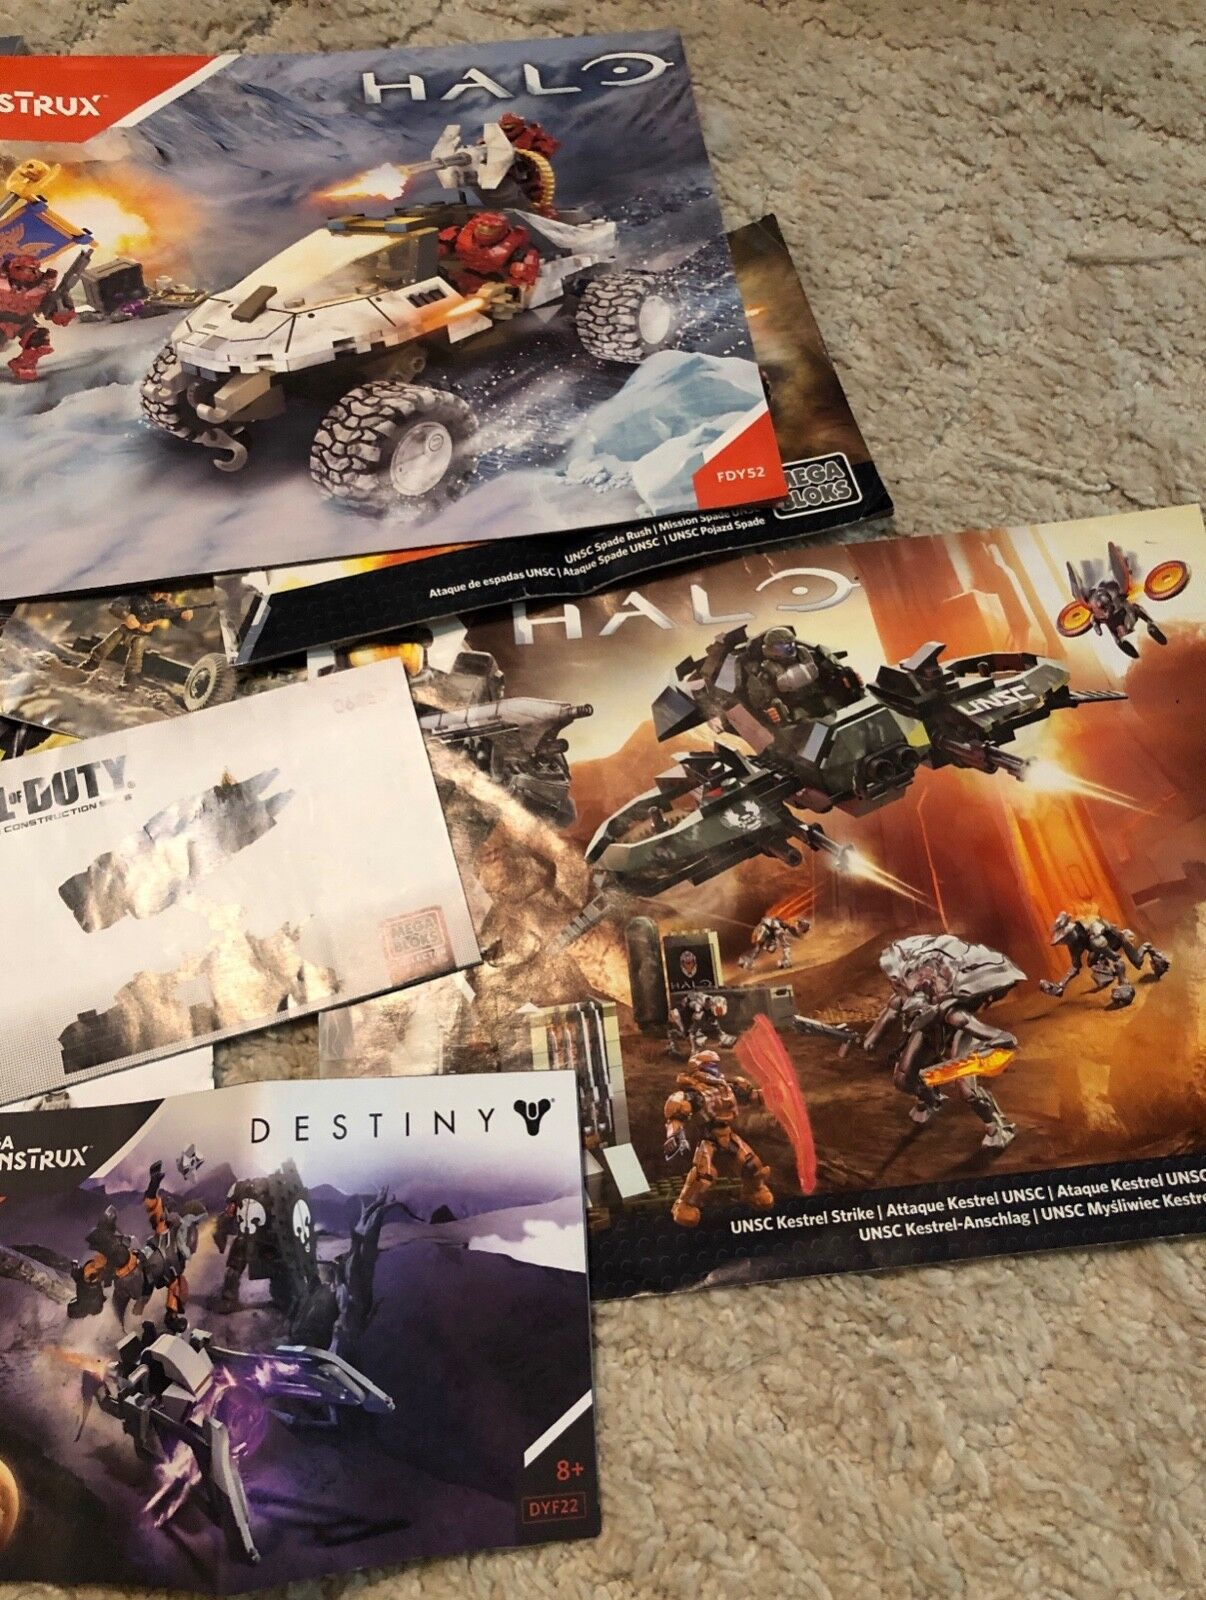 Mega Construx Halo, Destiny Destiny Destiny & Call of Duty sets. Used in good condition. 1ef038